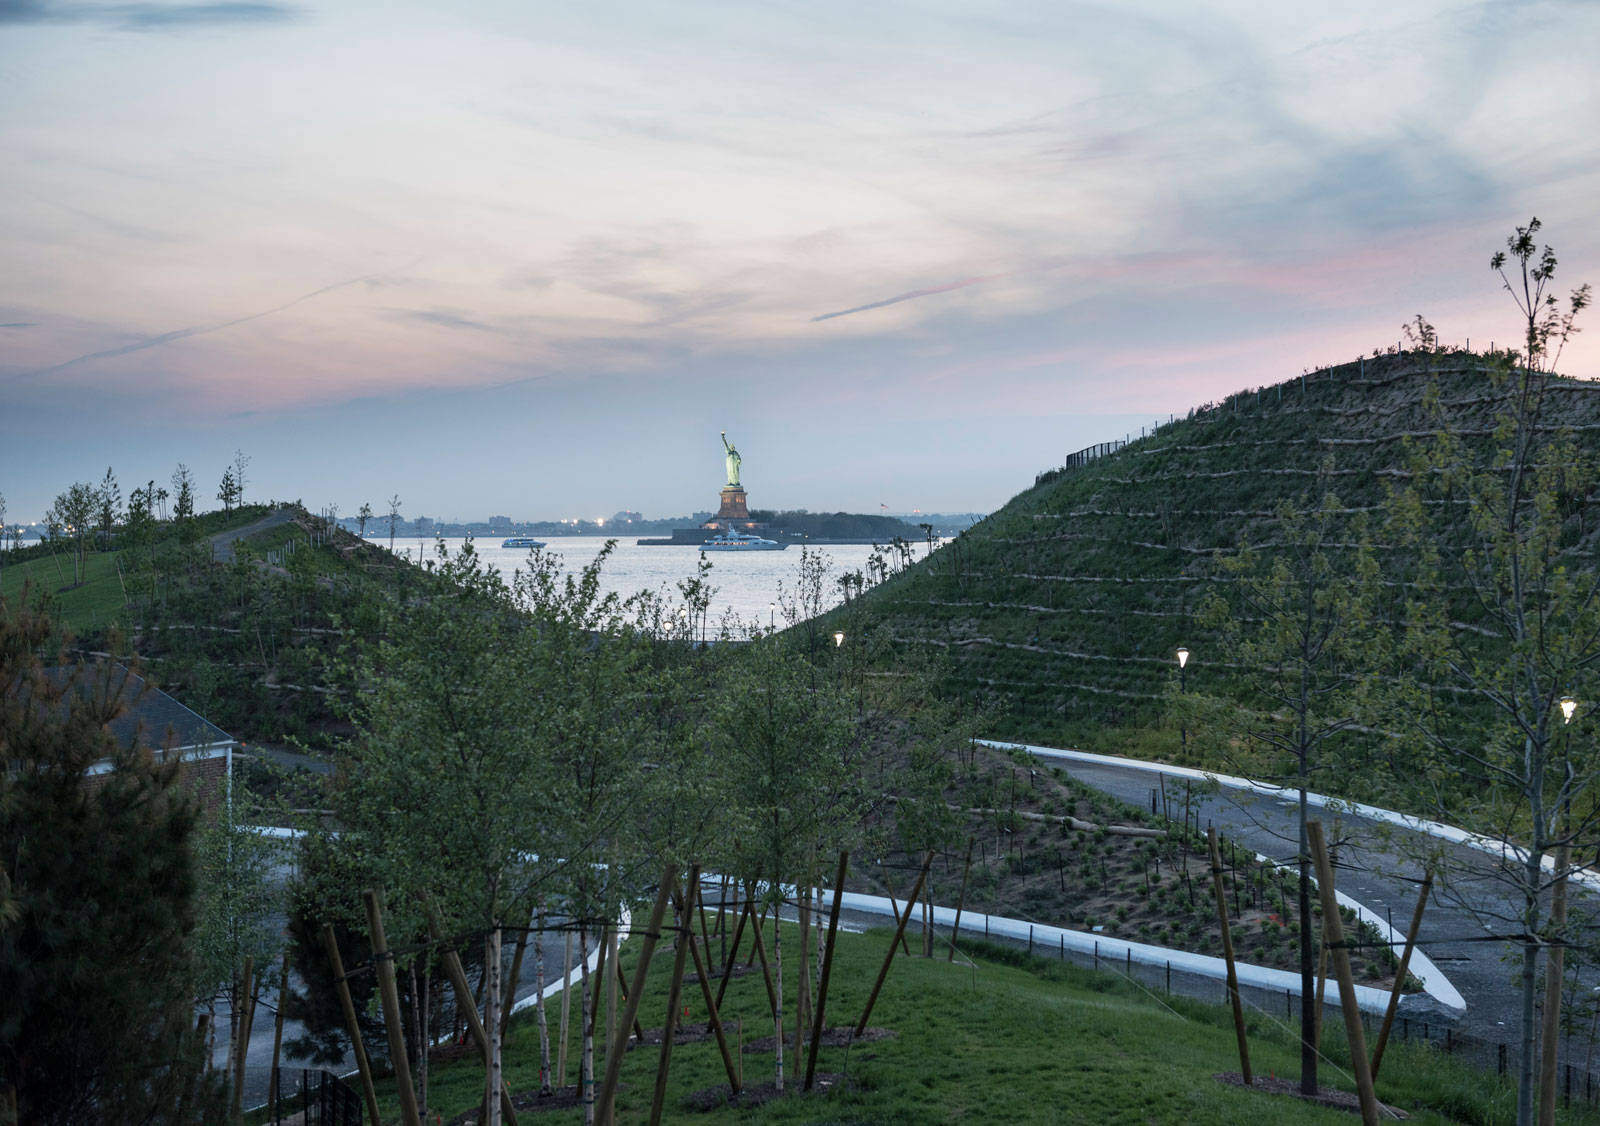 West 8's man-made Discovery and Outlook Hills, with the Statue of Liberty in the distance, Governors Island, New York, 2016